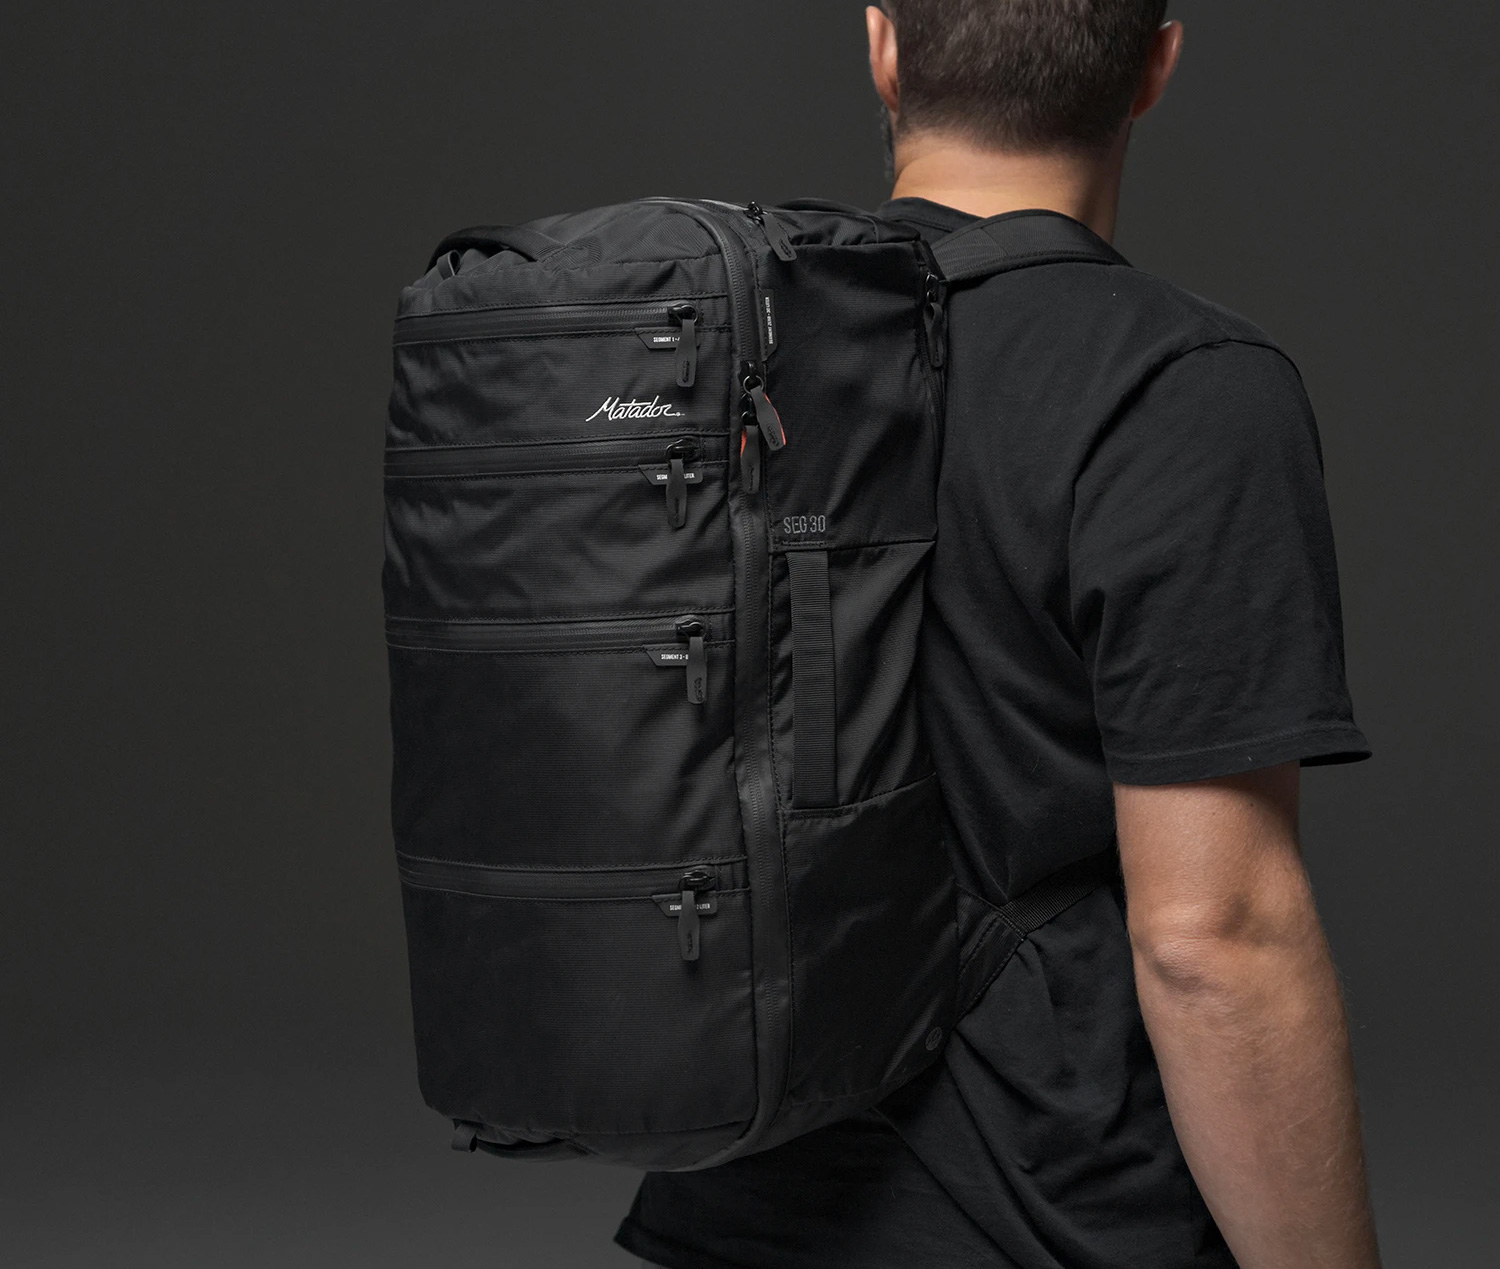 Pack Like a Pro with Matador's Seg30 at werd.com